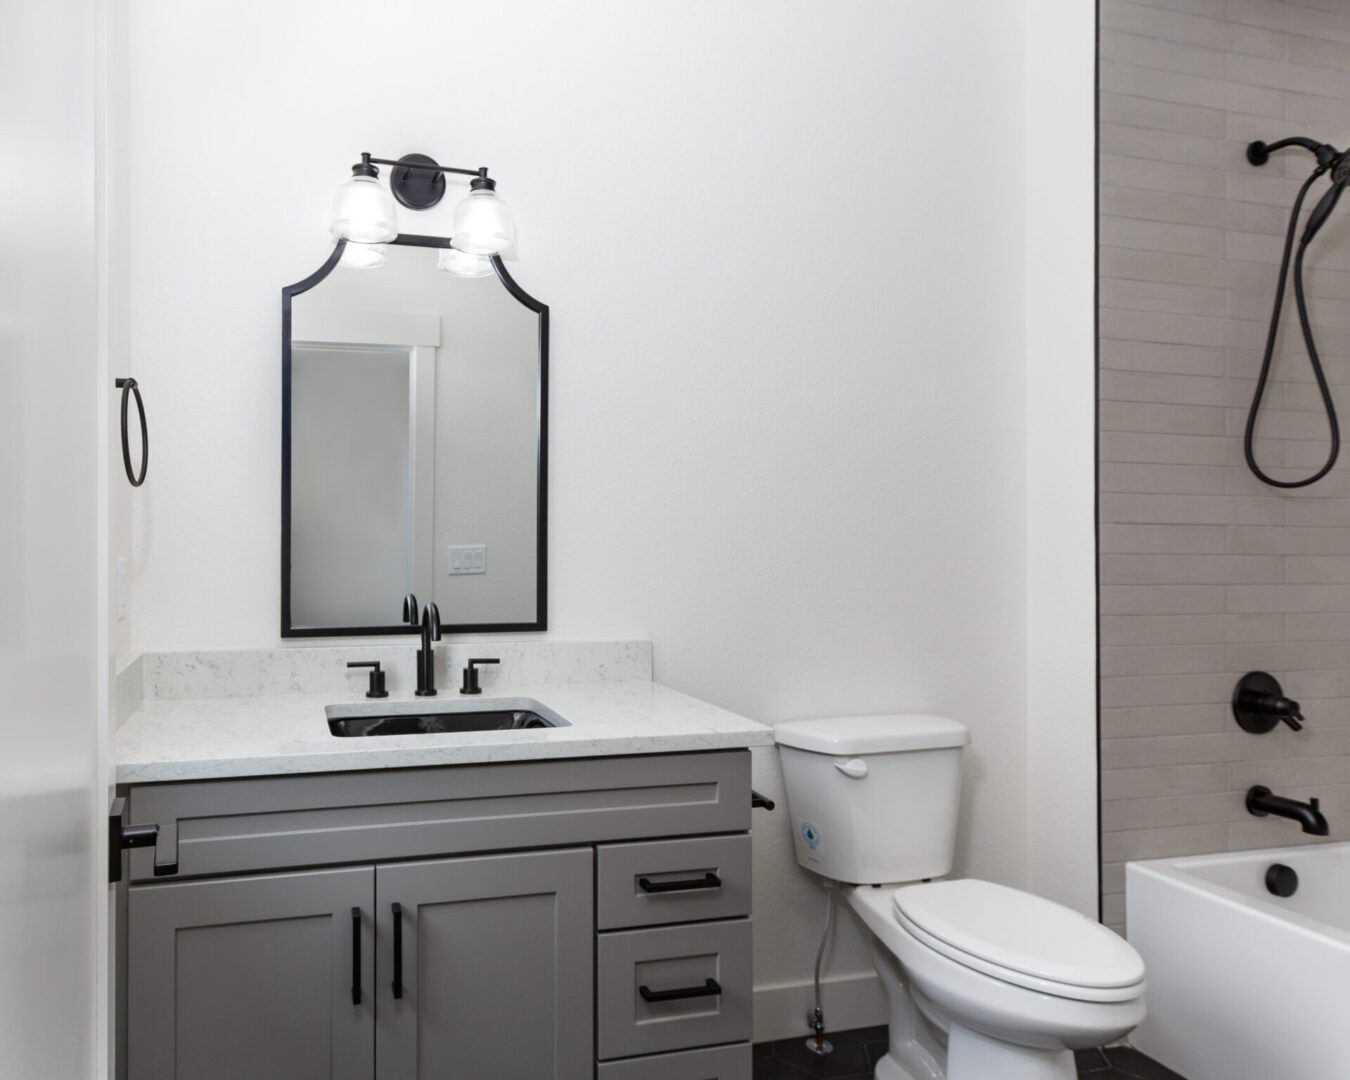 bathroom sink and toilet with bold black outlines